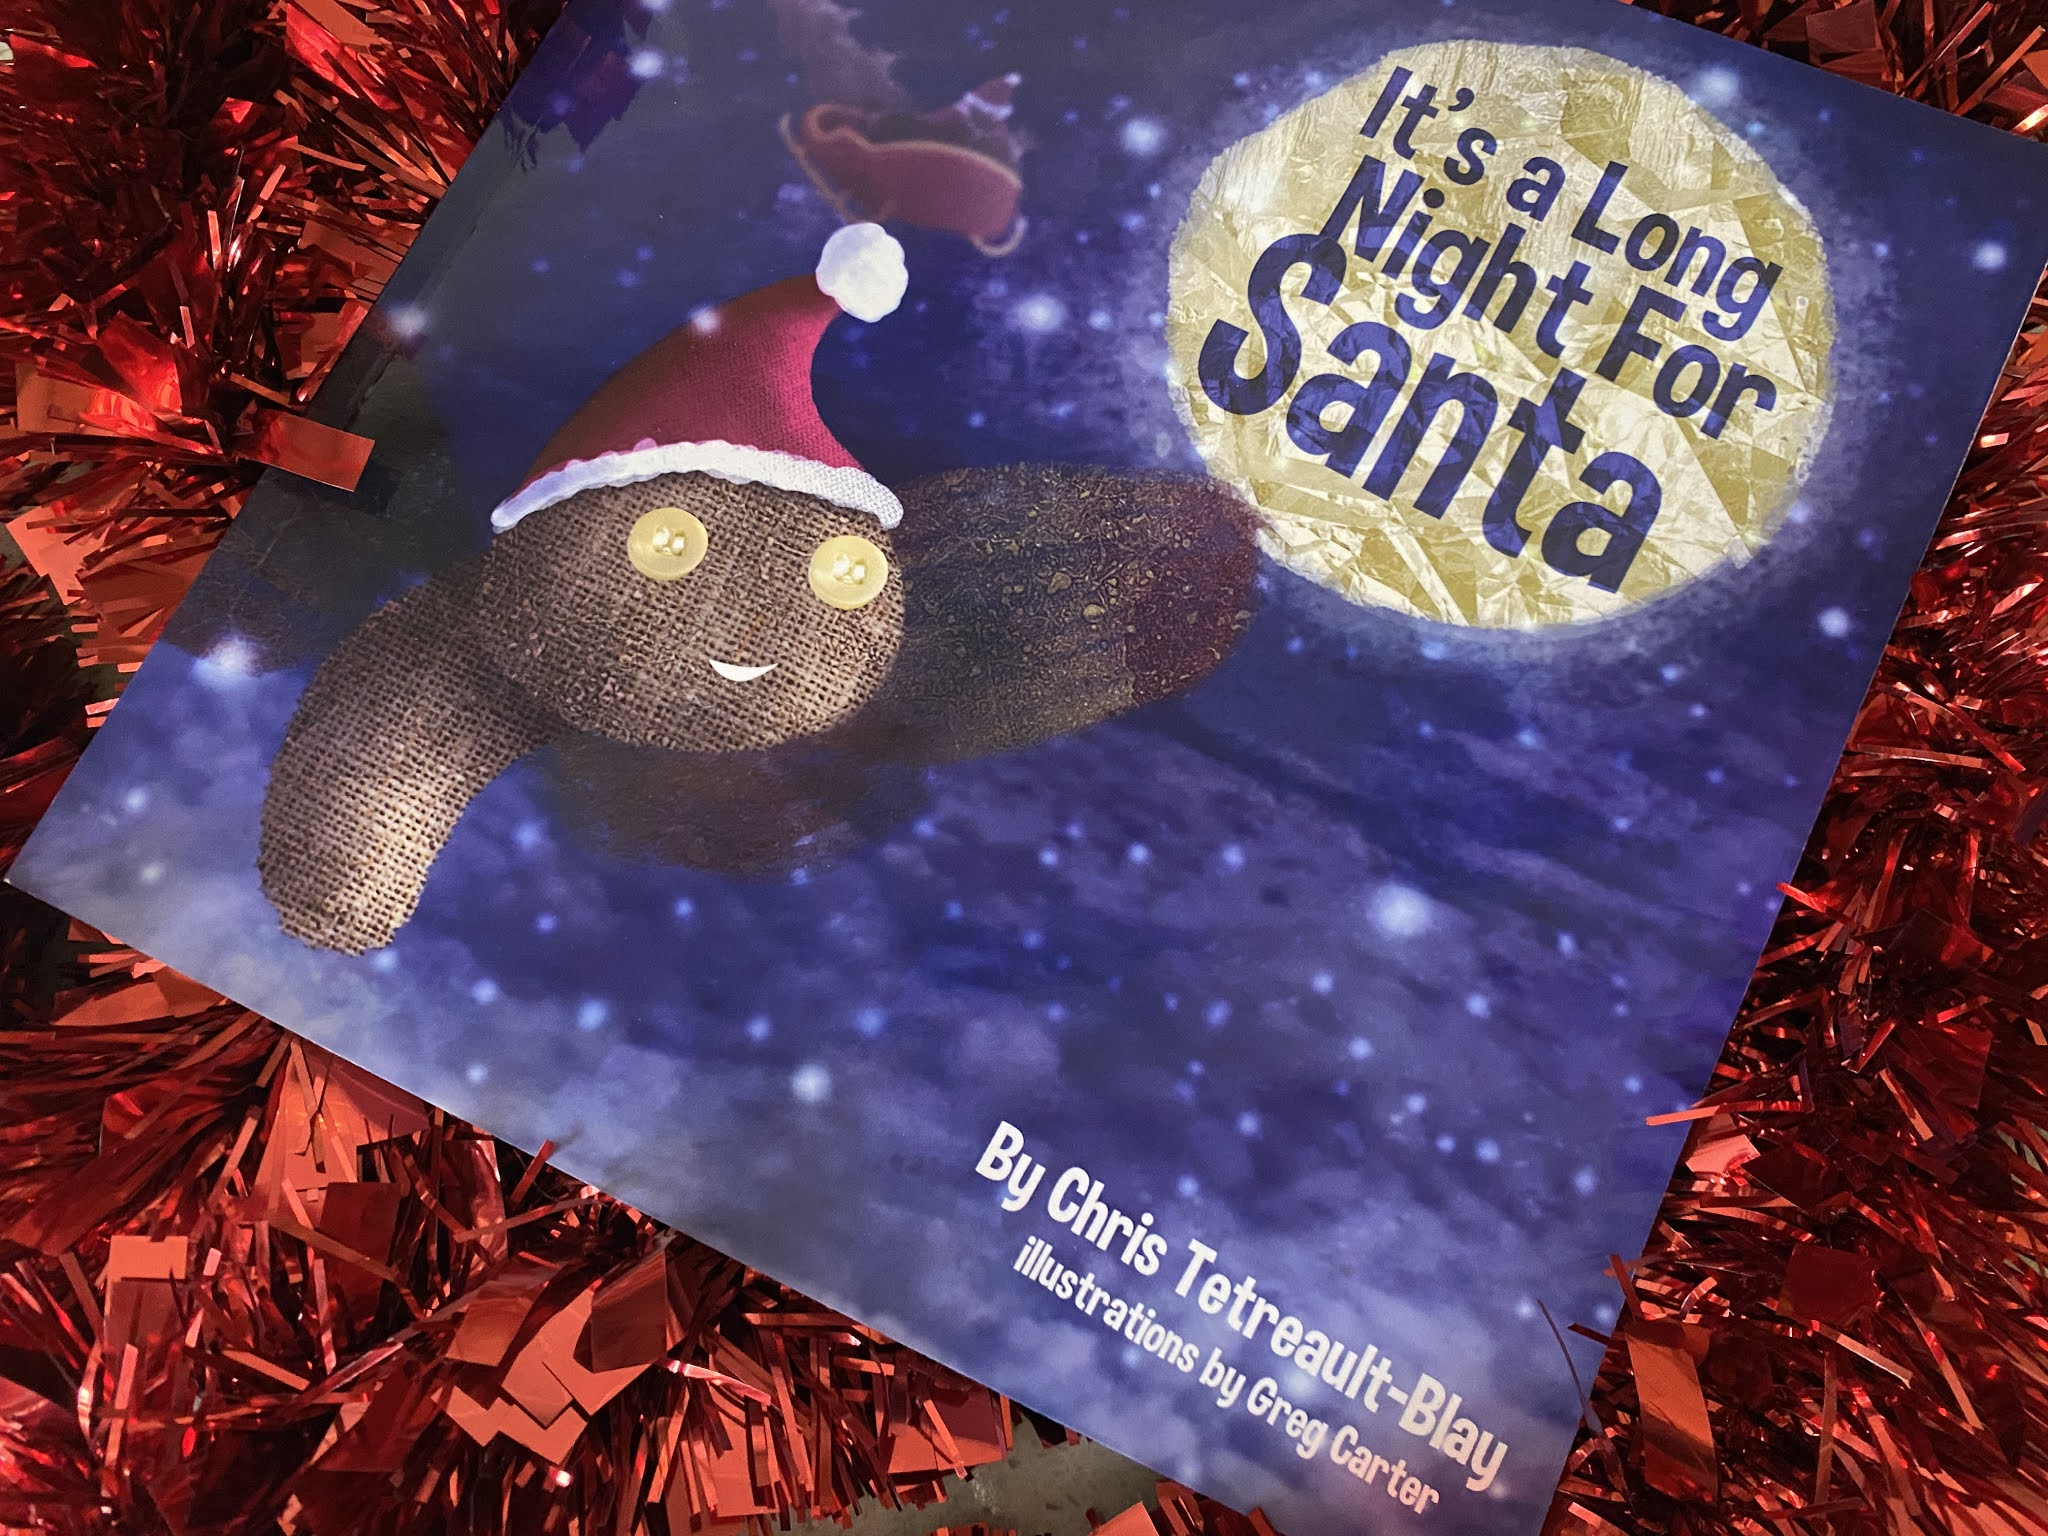 It's A Long Night For Santa Book